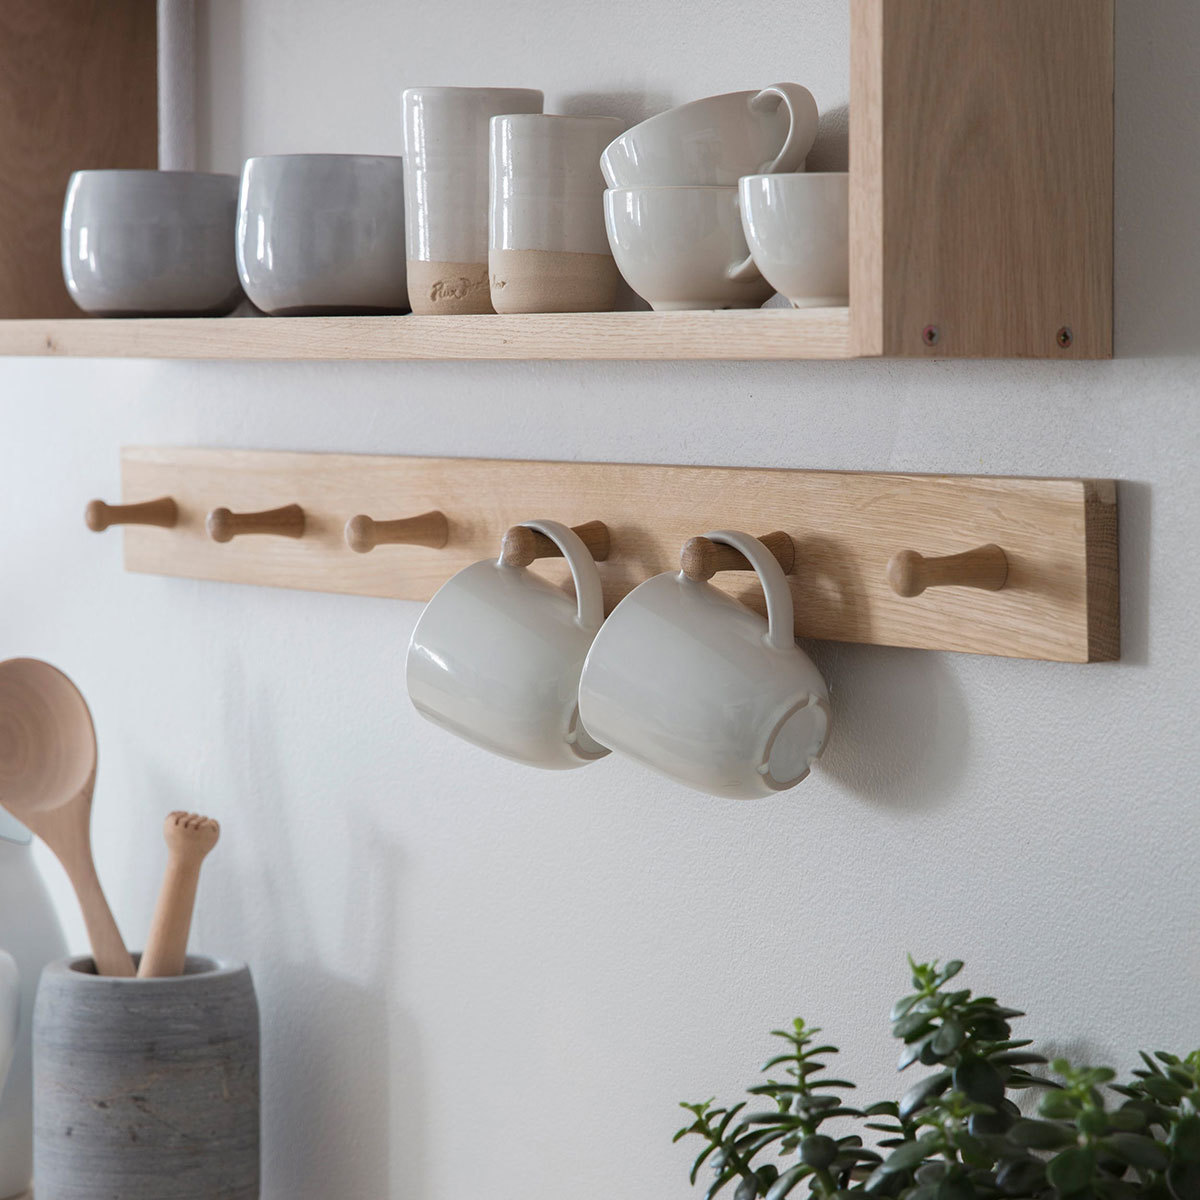 Pegs and Shelving